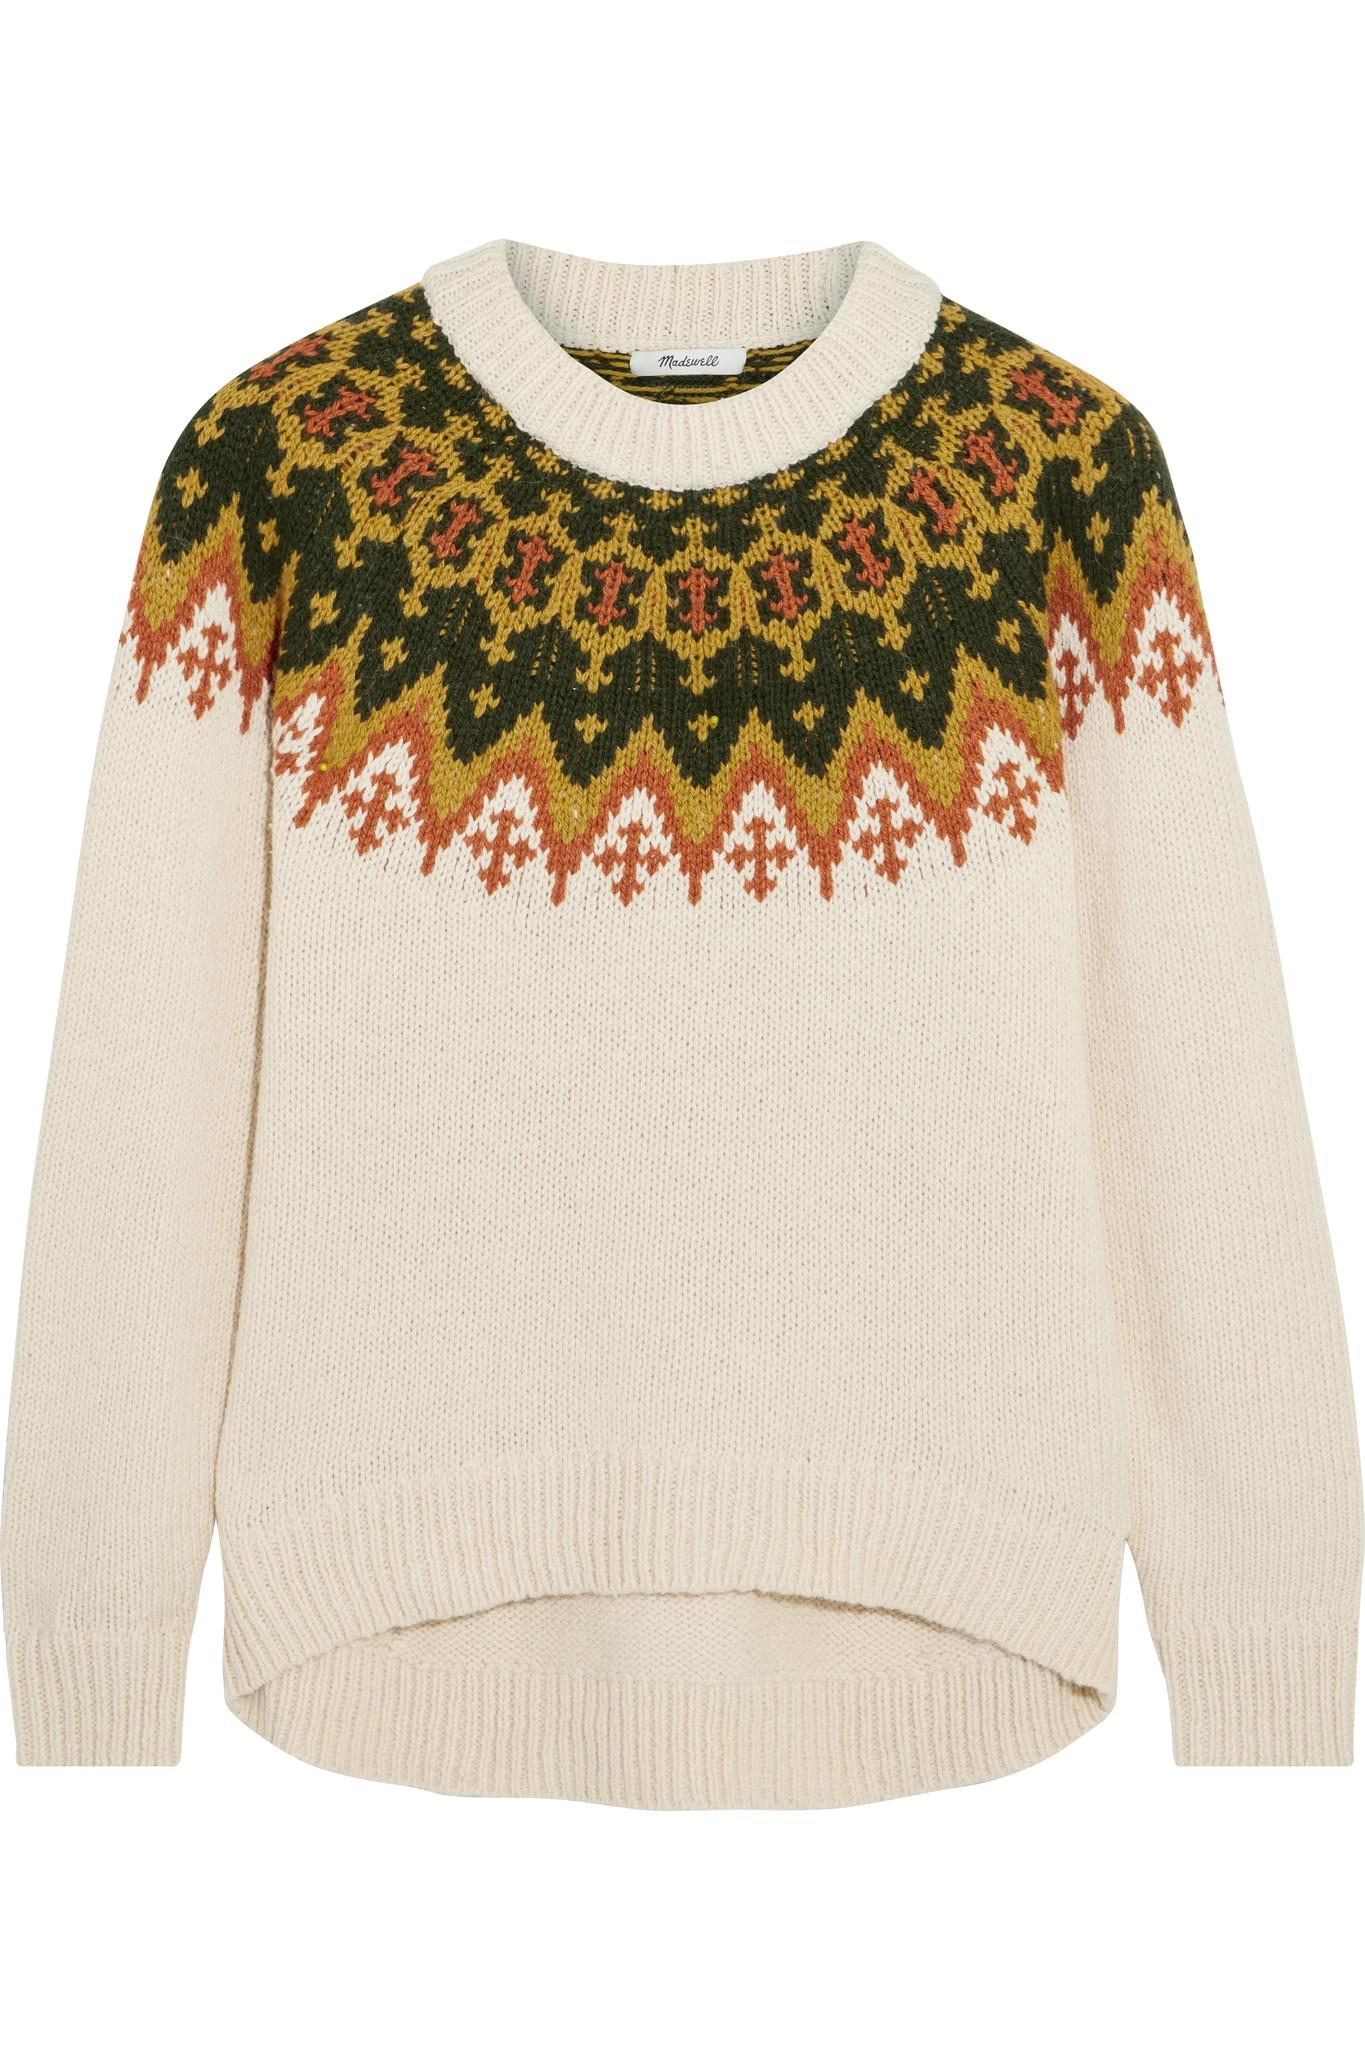 Madewell Fair Isle Cotton-blend Sweater in Natural | Lyst